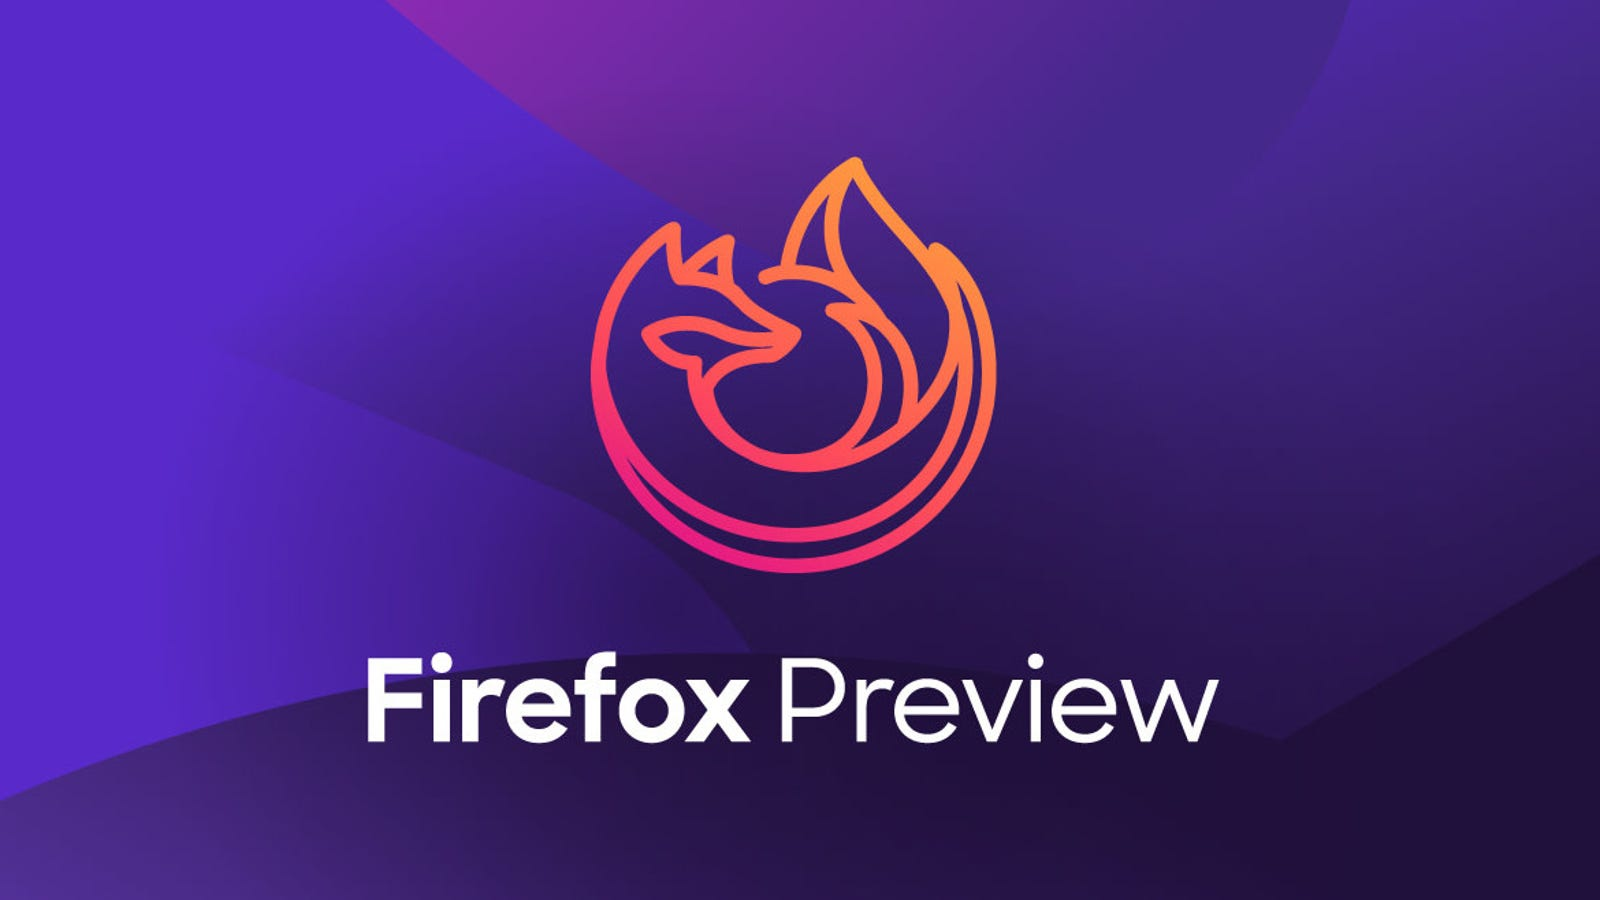 QnA VBage Everything You Need to Know About Firefox Preview on Android